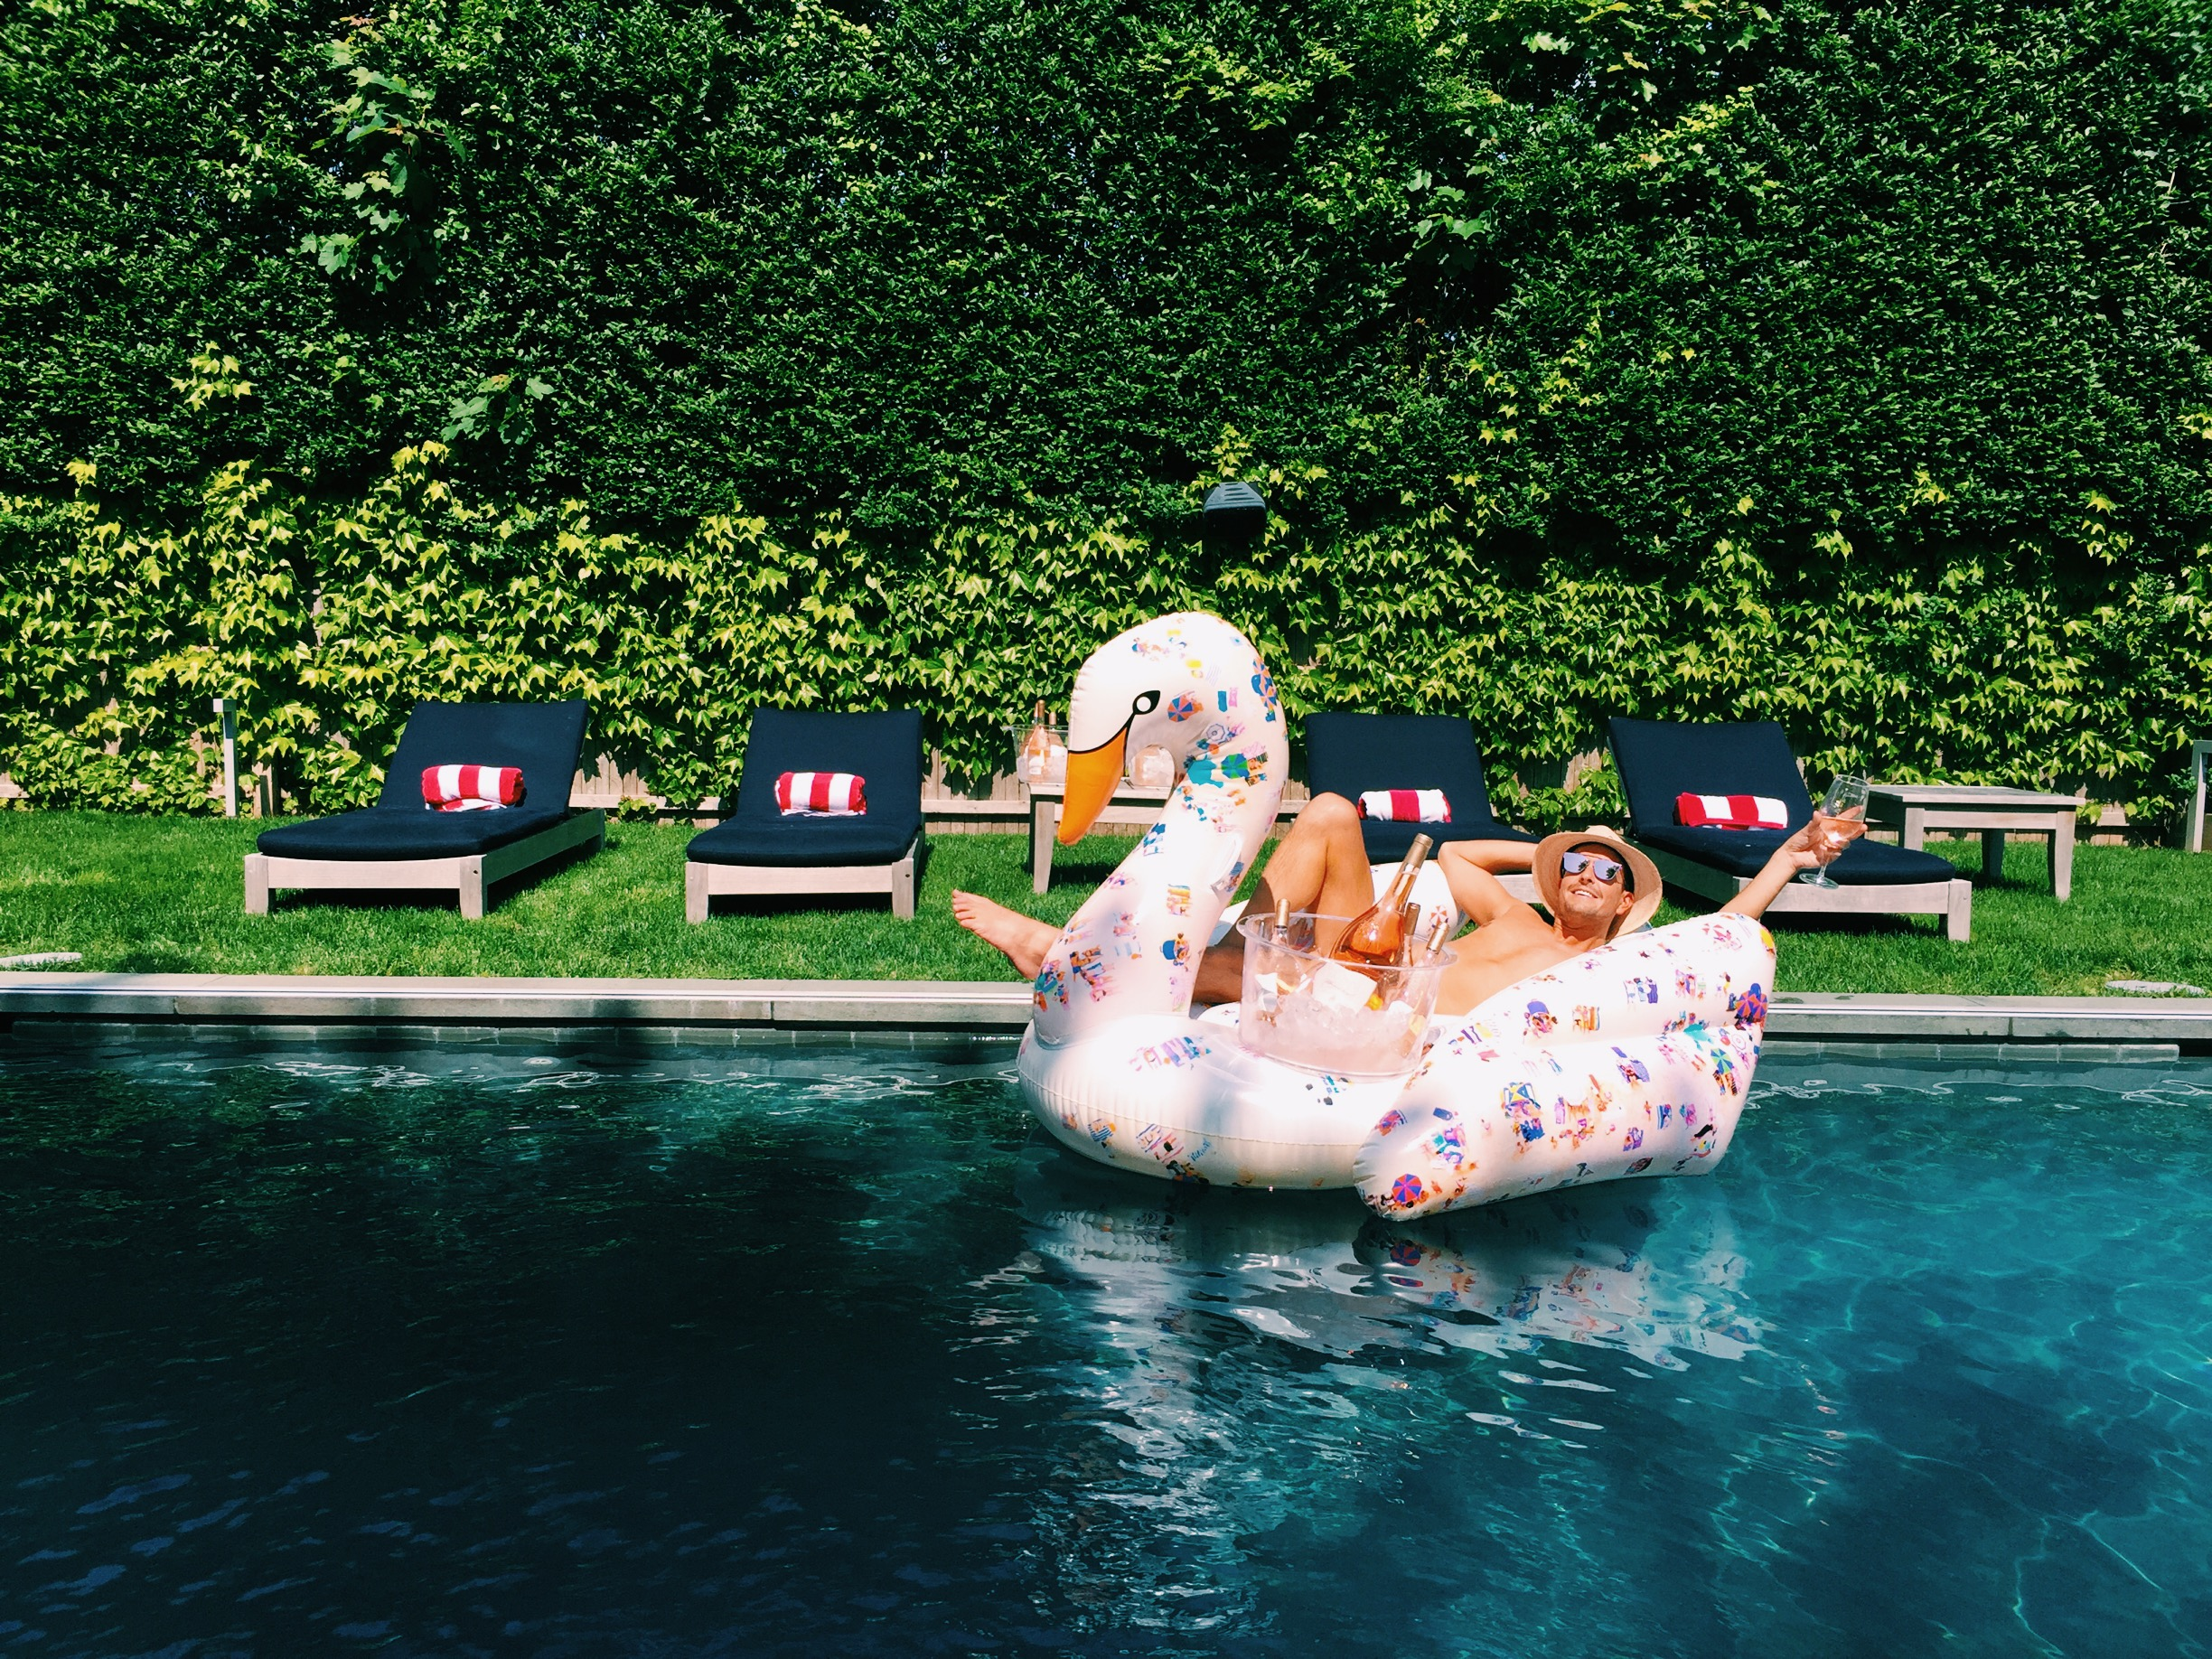 Travel Guide The Hamptons - Pool Time